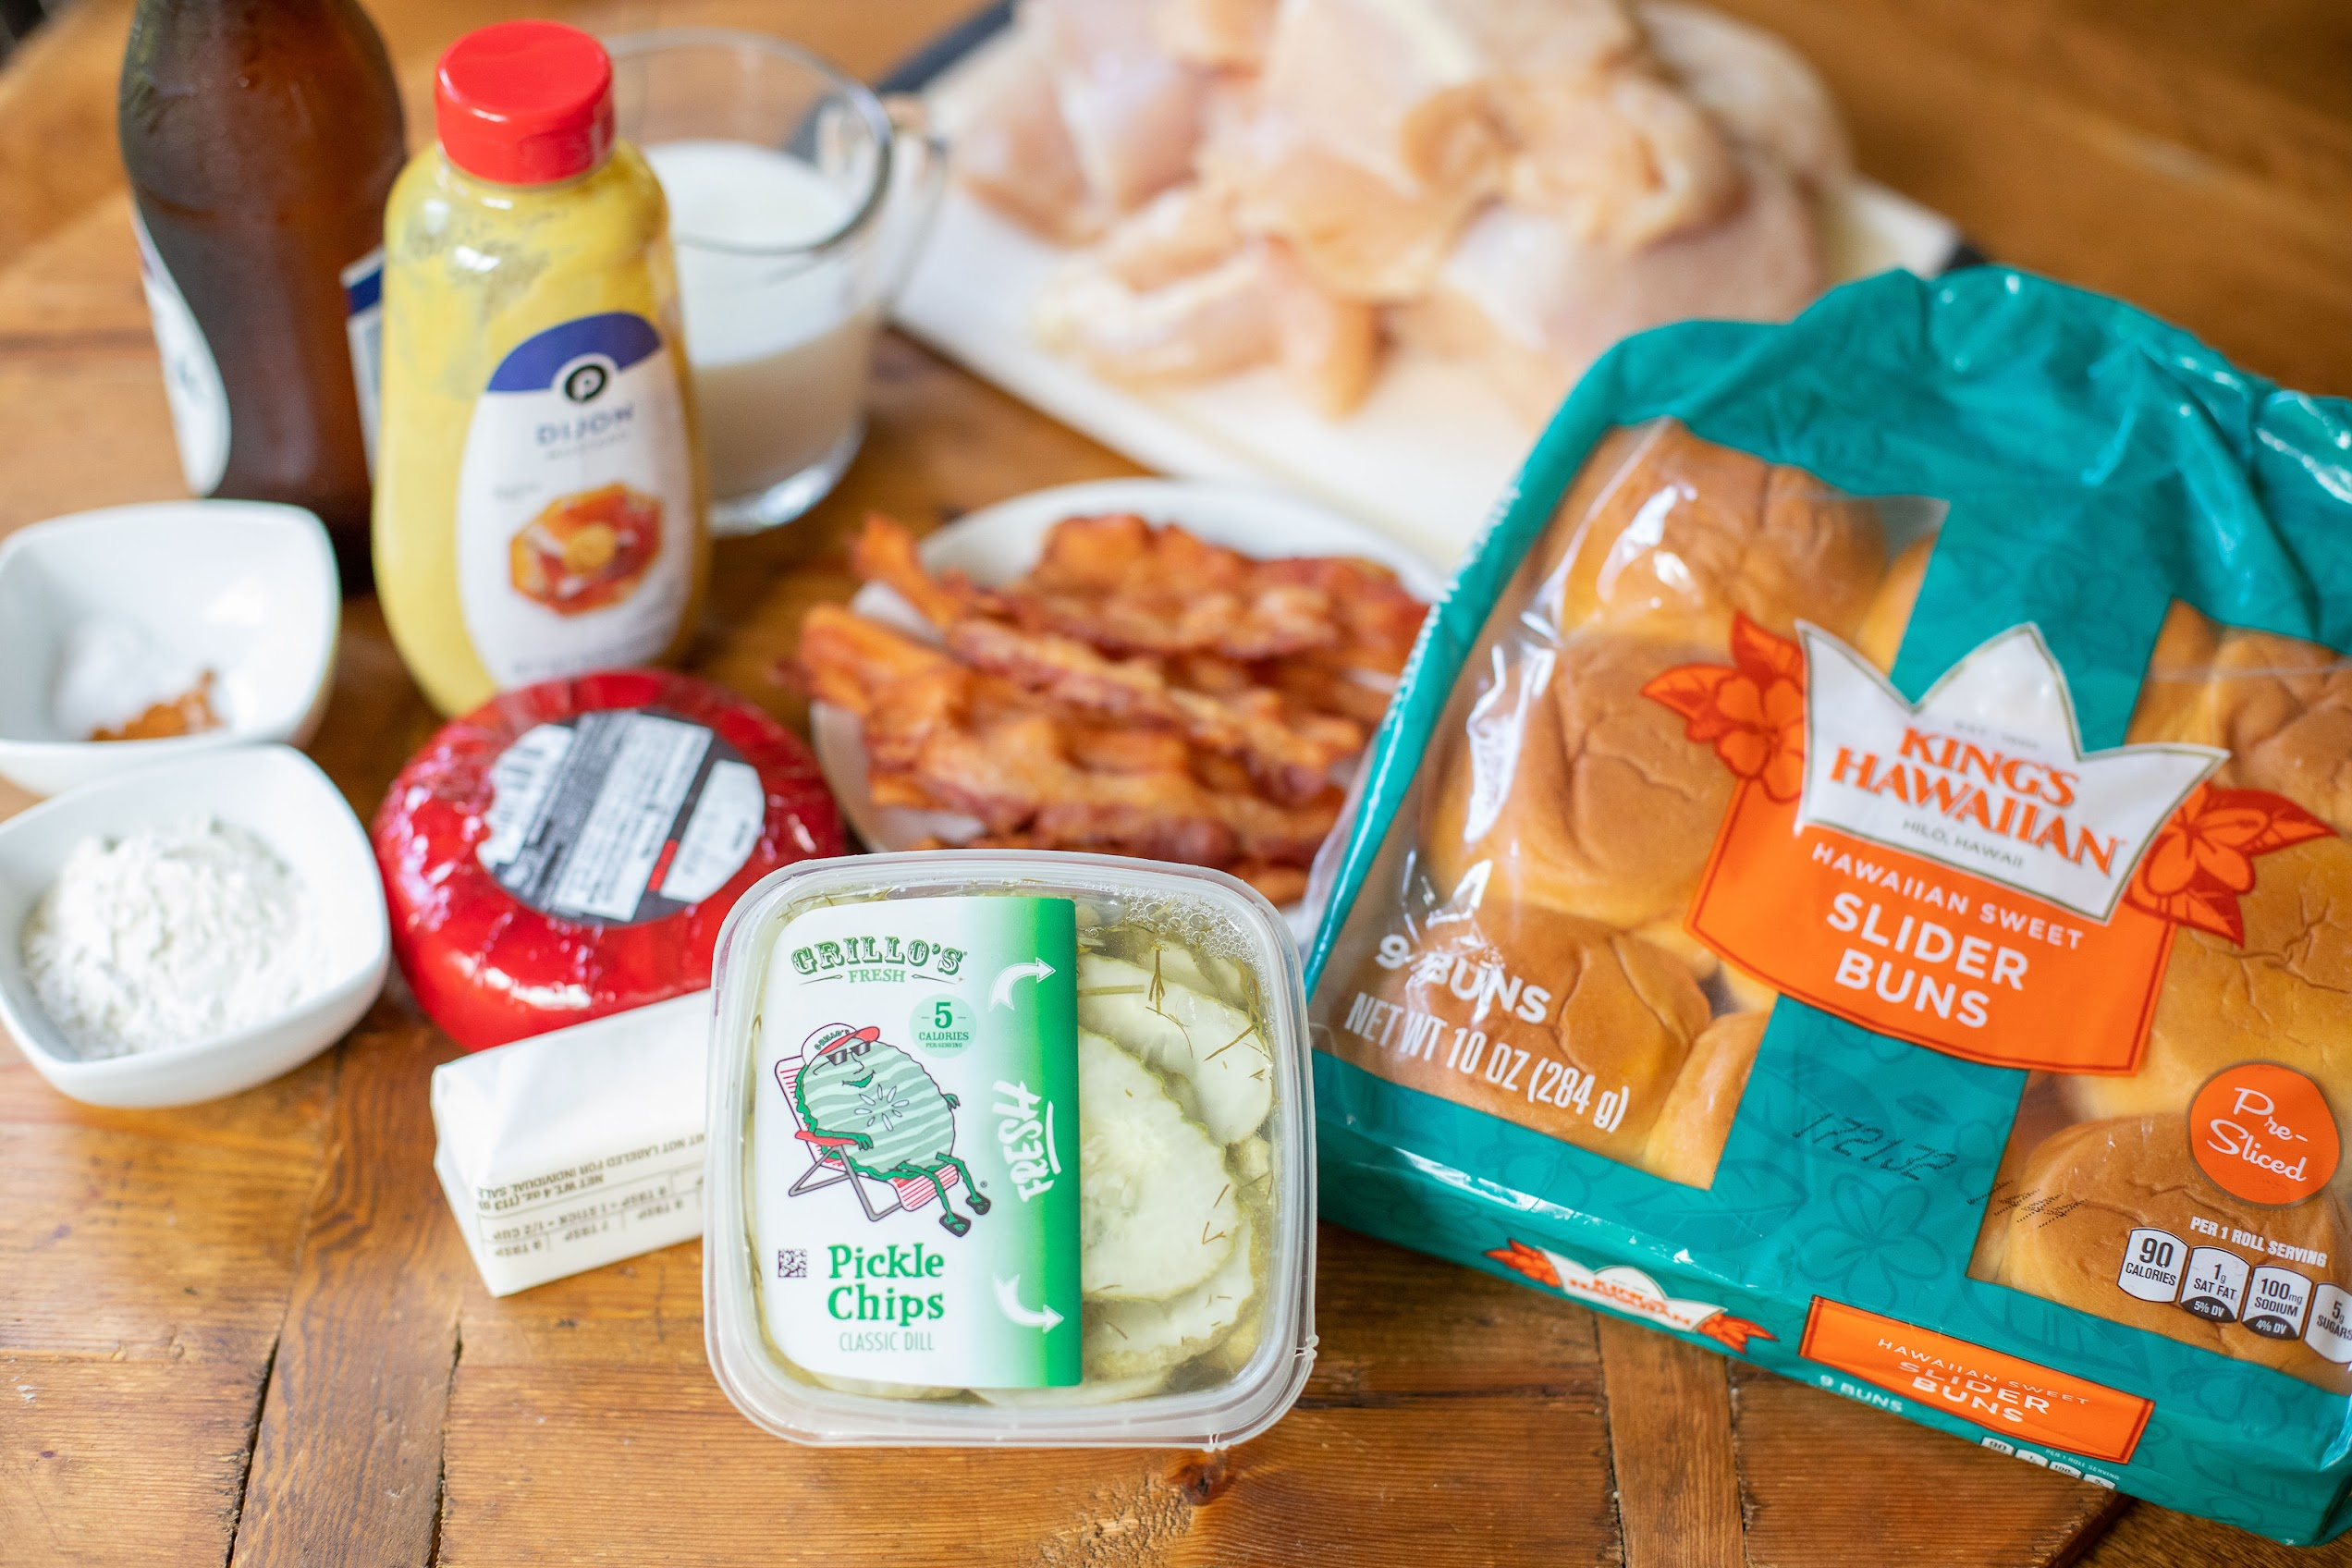 Add These Beer Cheese & Bacon Topped Chicken Sliders To Your Labor Day Menu on I Heart Publix